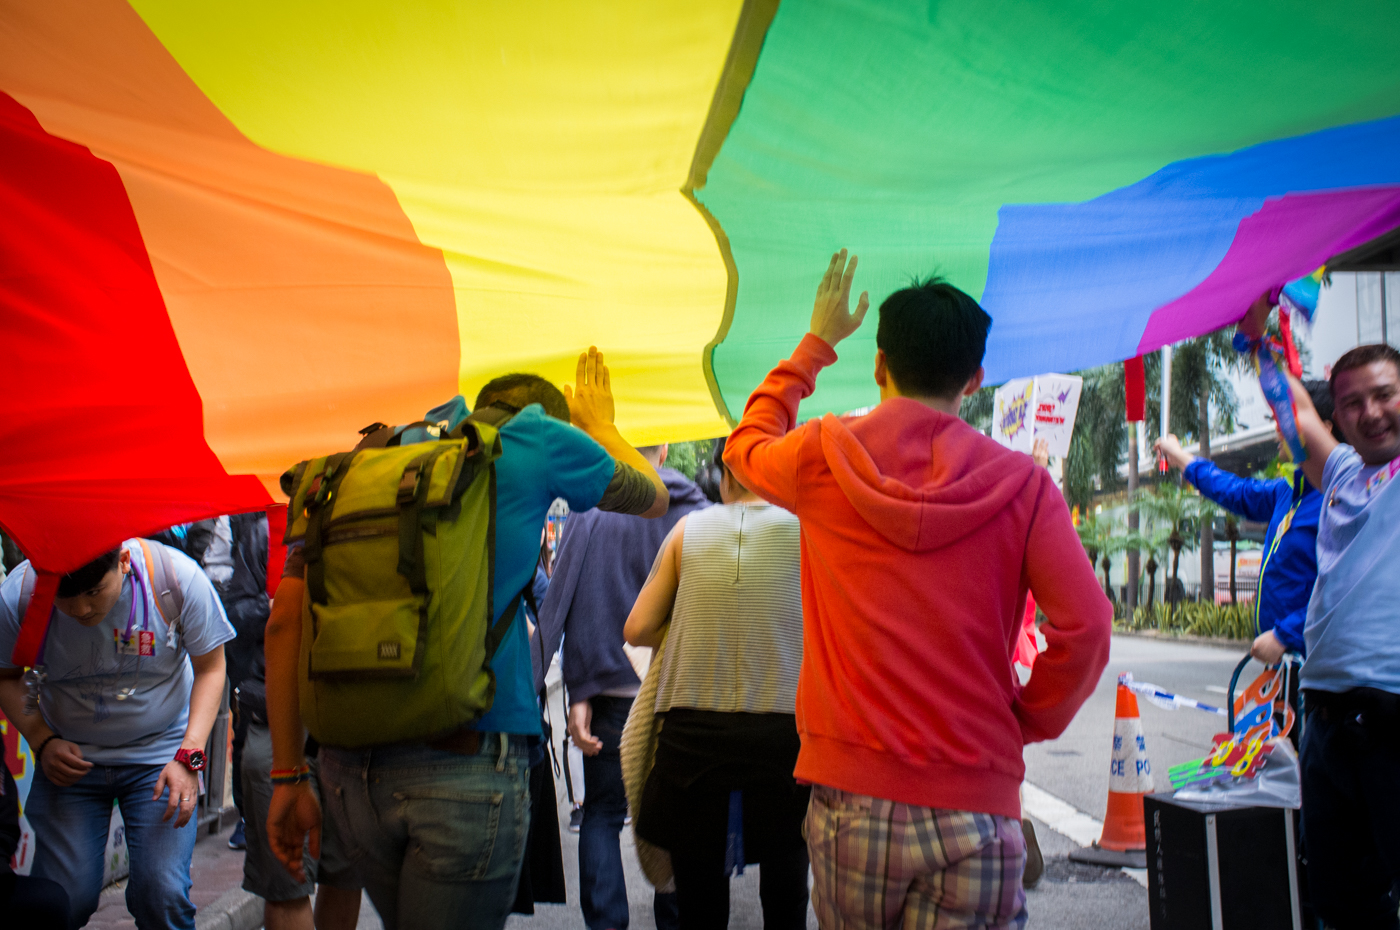 Two Chinese men with short hair walking under a long rainbow flag with one hand up